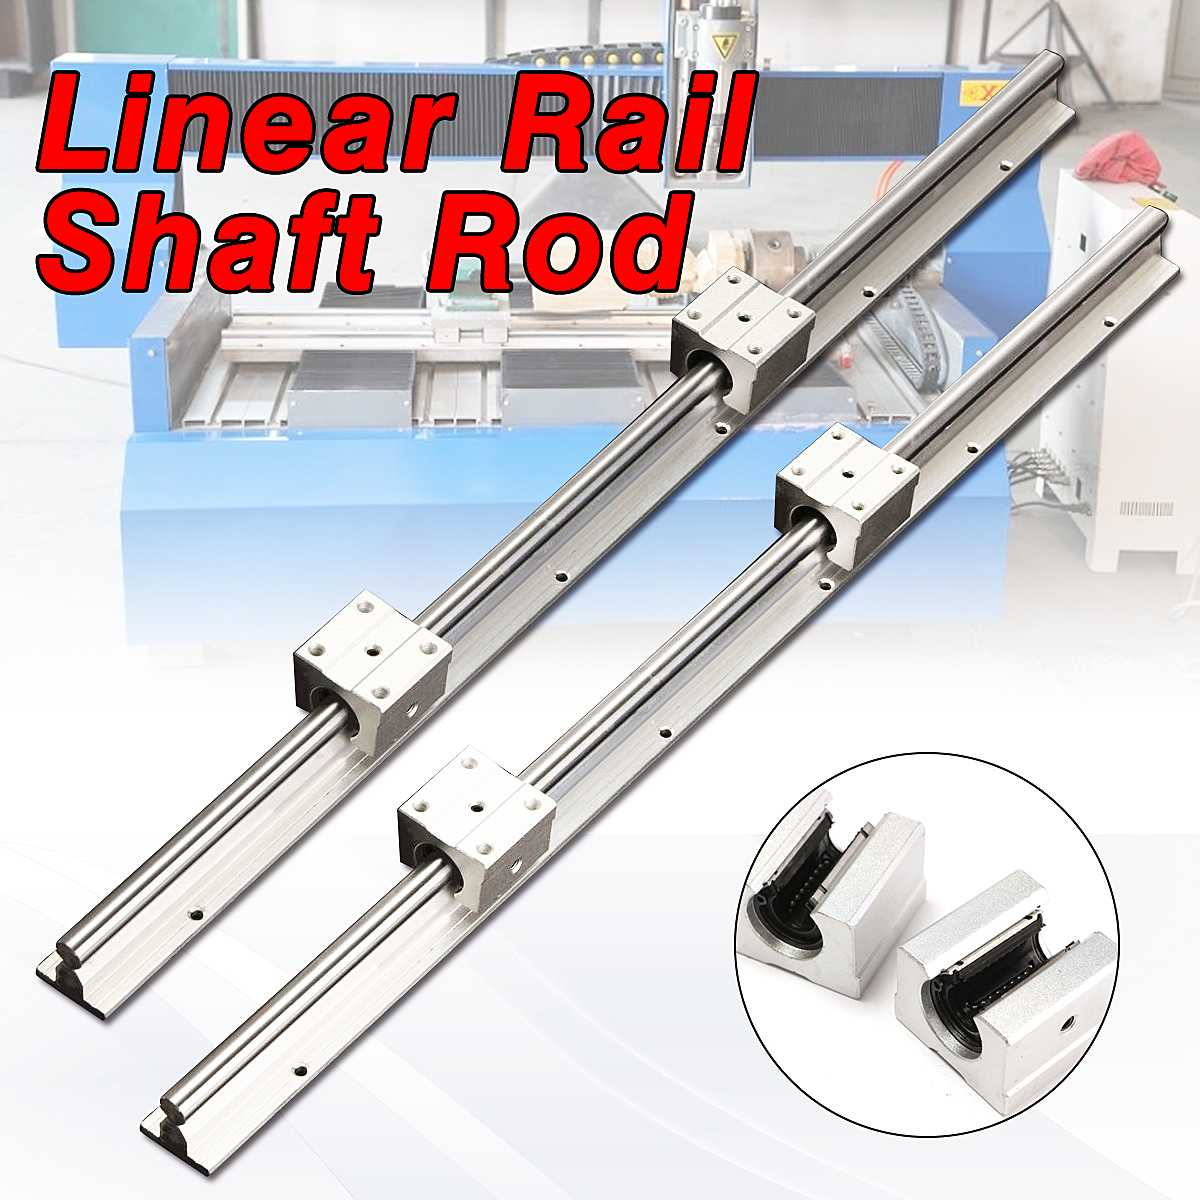 New SBR12-600mm Fully Supported 12MM Linear Bearing Rails Shaft Rod+2x SBR12UU Block Linear GuidesNew SBR12-600mm Fully Supported 12MM Linear Bearing Rails Shaft Rod+2x SBR12UU Block Linear Guides